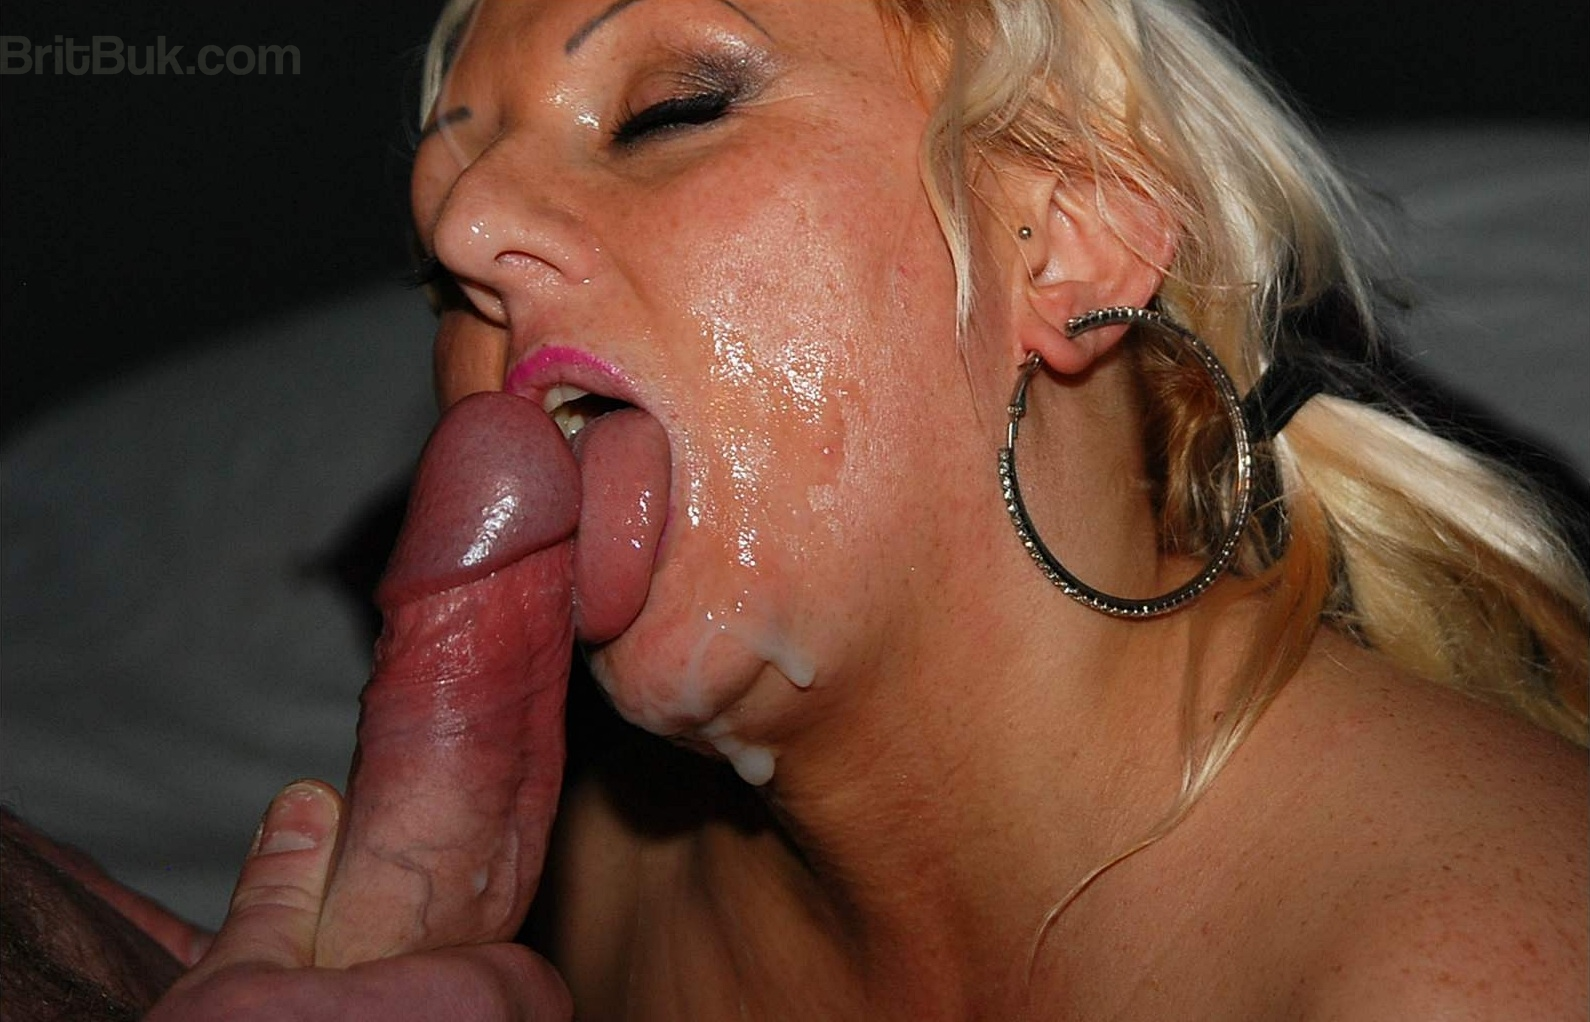 Amateur milf is so fucking hot 1